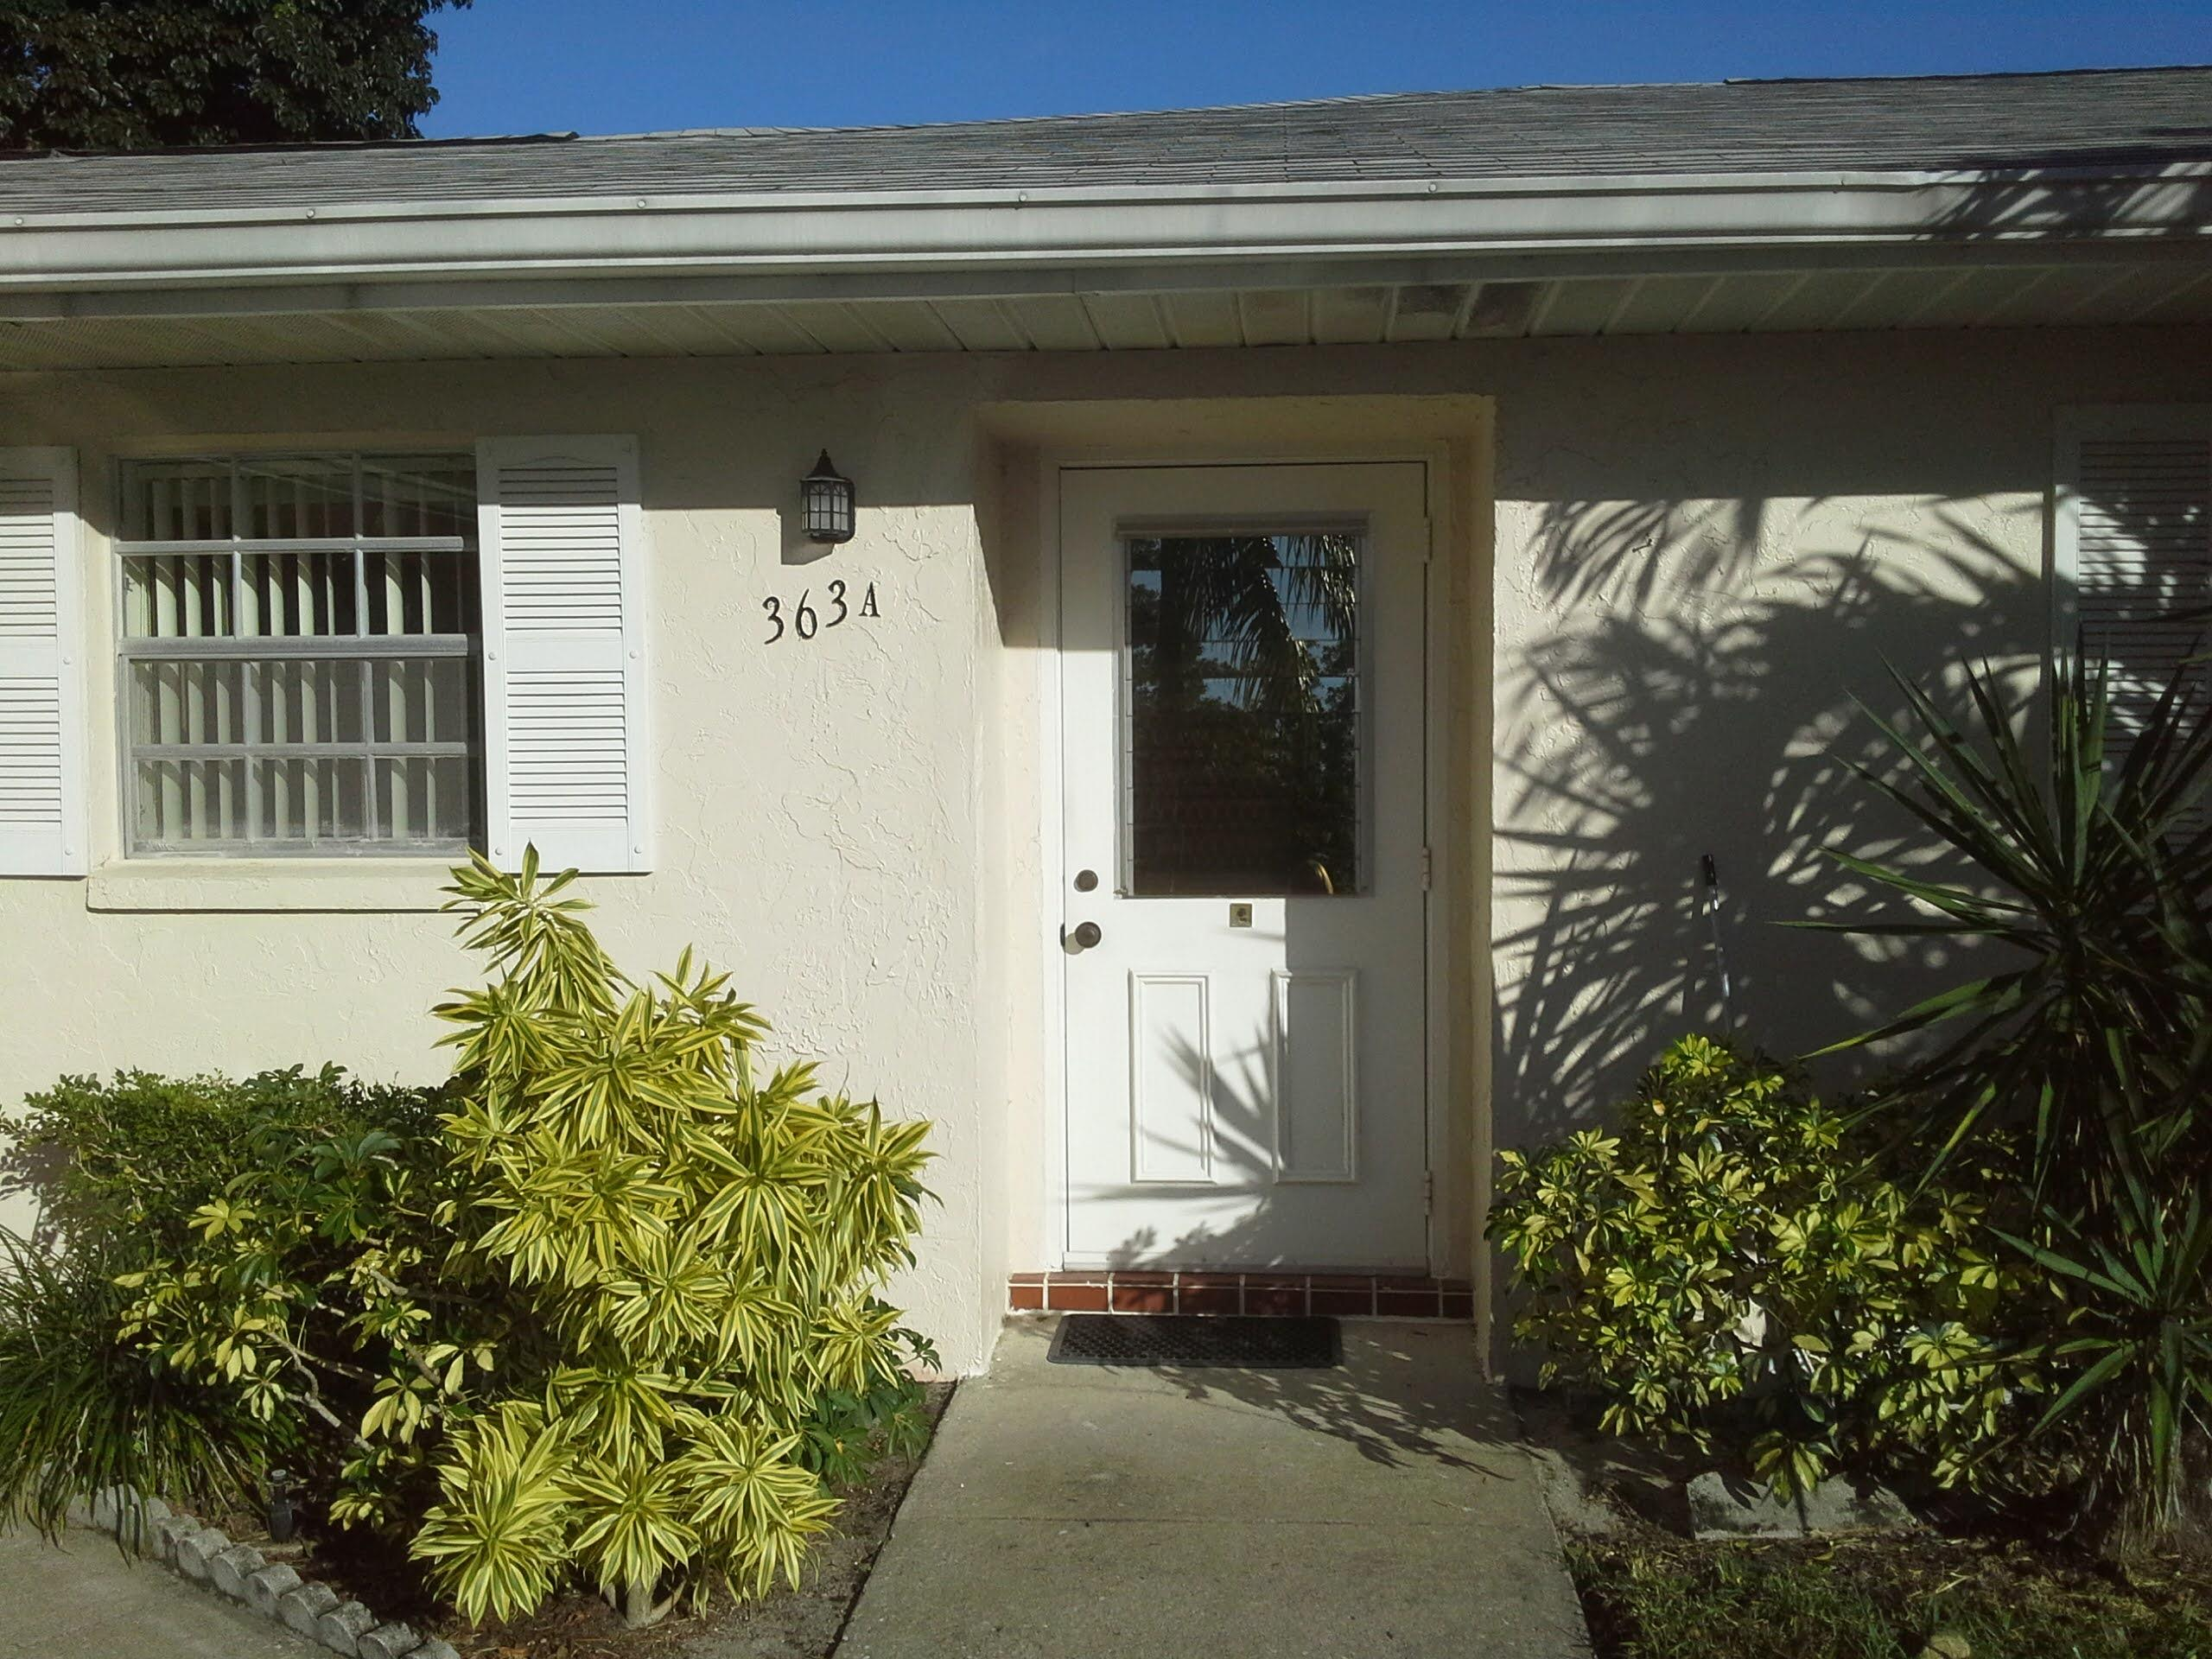 2 bedroom 2 bath corner unit located in well kept active 55+ community of Covered Bridge.  Lots of activities, onsite property manager and close to shopping. Condo has been meticulously cared for and has tile througout and all GE appliances are newer.  Large enclosed Florida Room with air conditioning and storage closet.